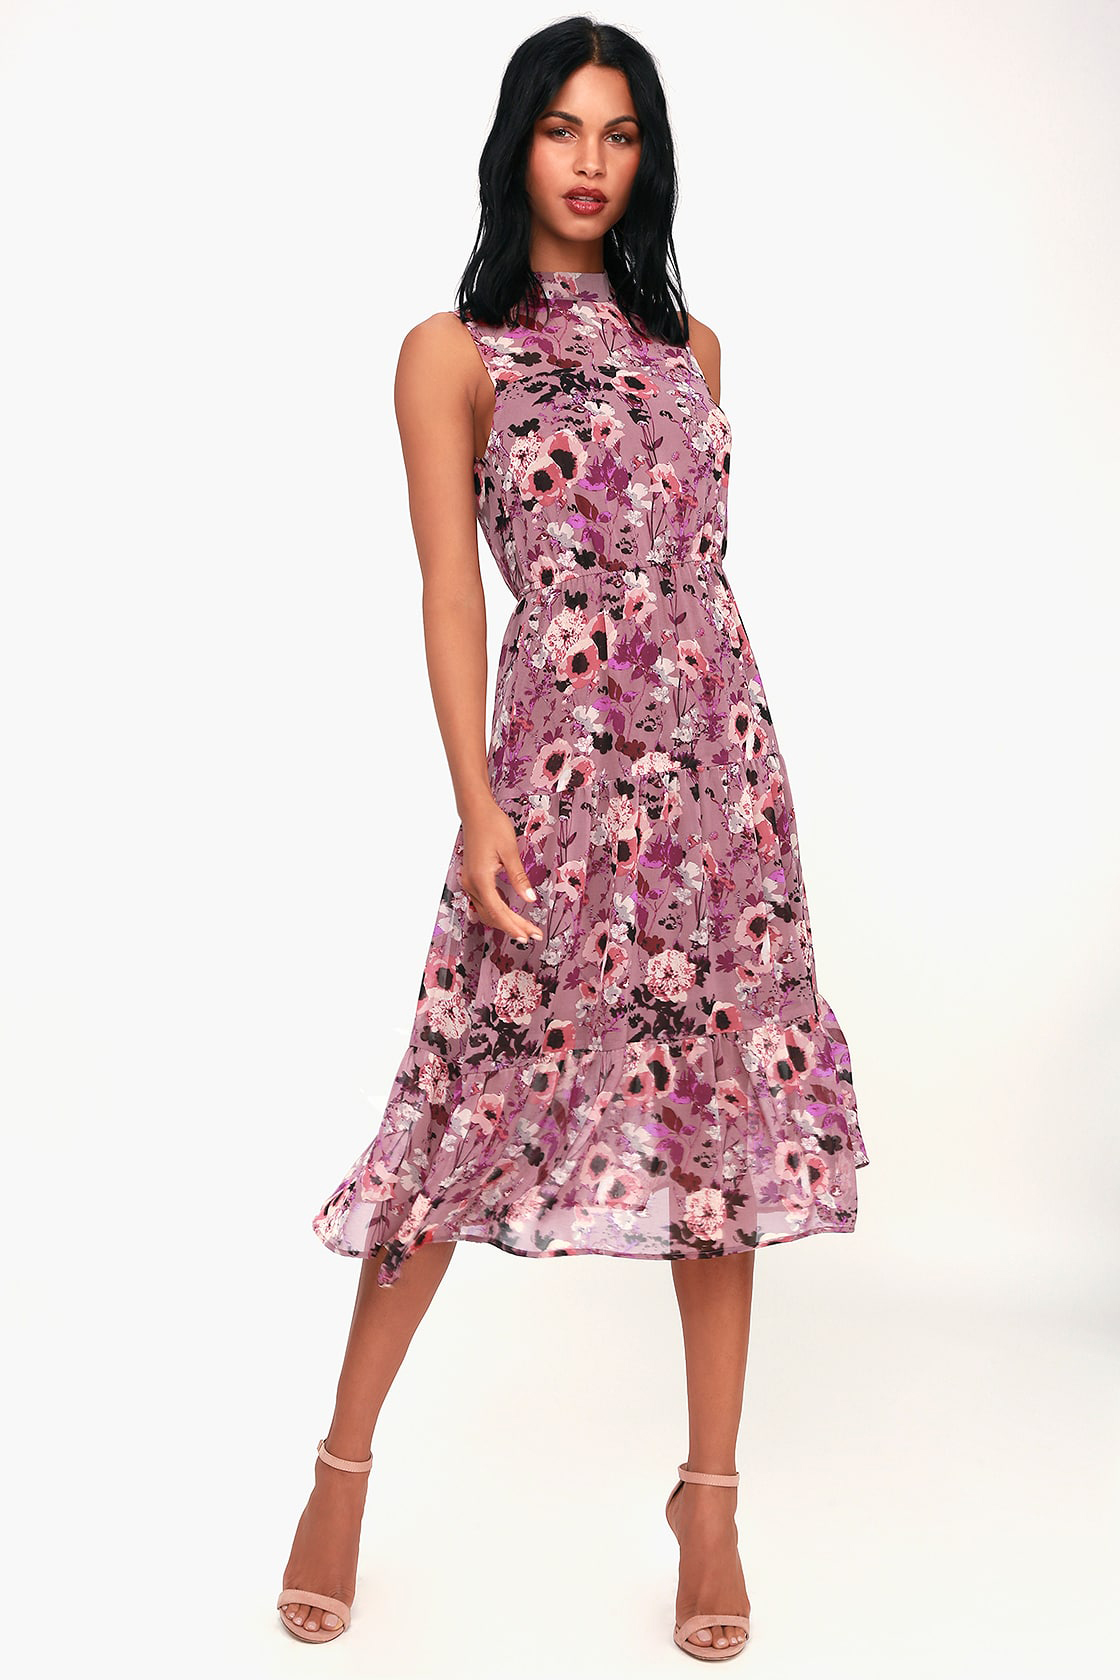 In My Dreams Floral Midi Dress